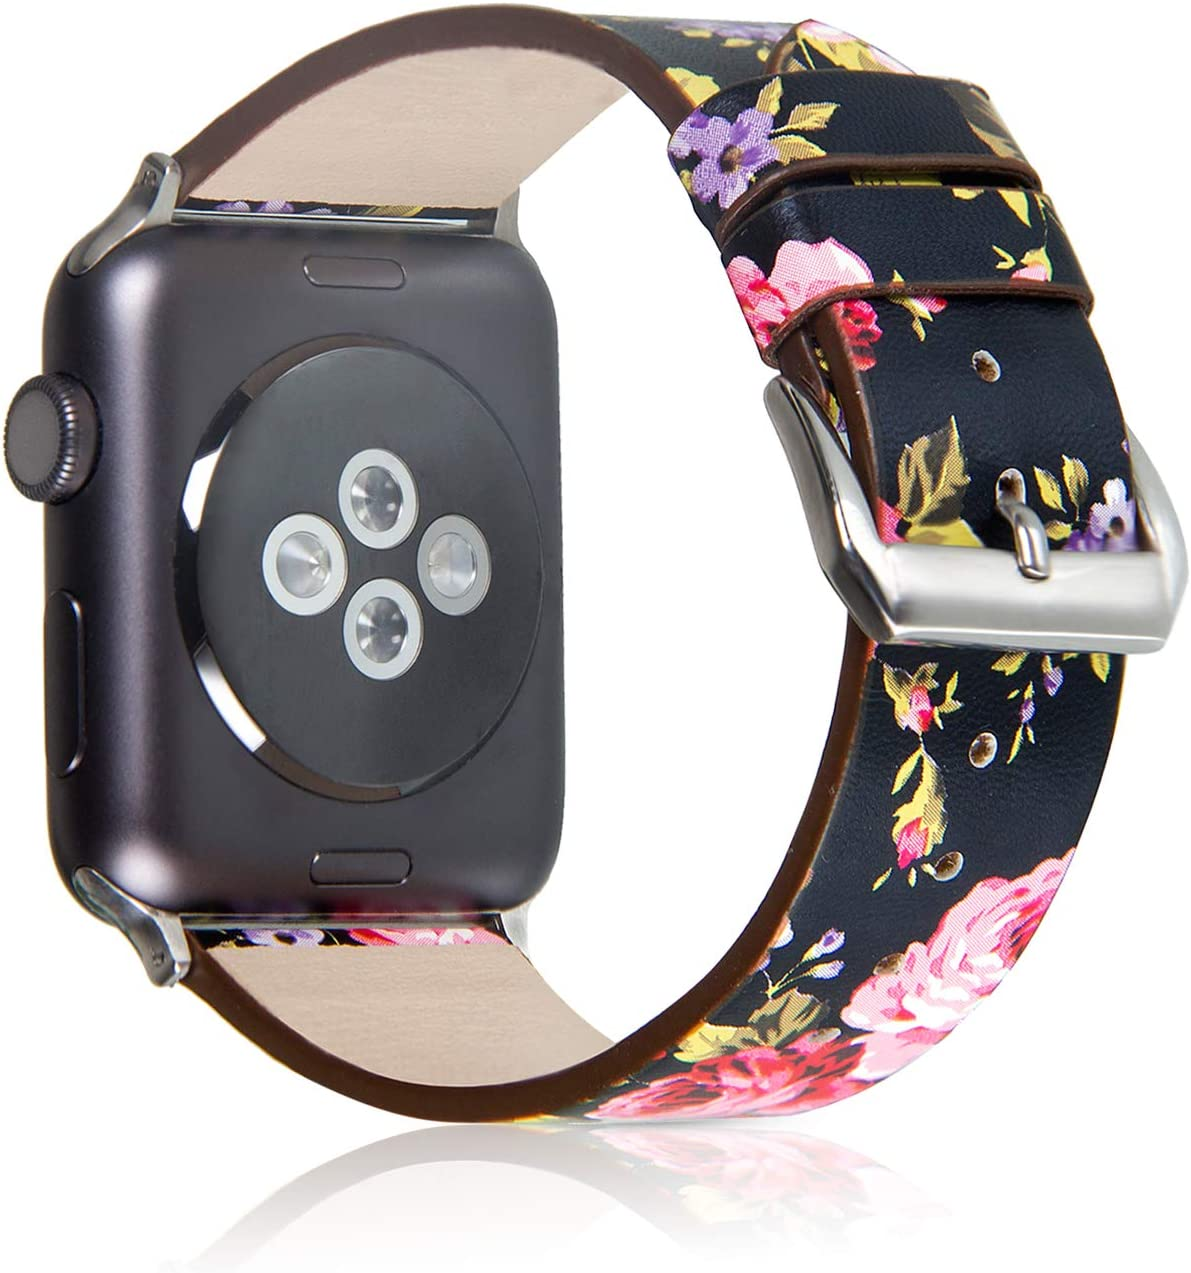 Pantheon Compatible with Apple Watch Band 38mm 40mm for Women - Floral Leather Compatible iWatch Bands / Strap for Series SE 6 5 4 3 2 1